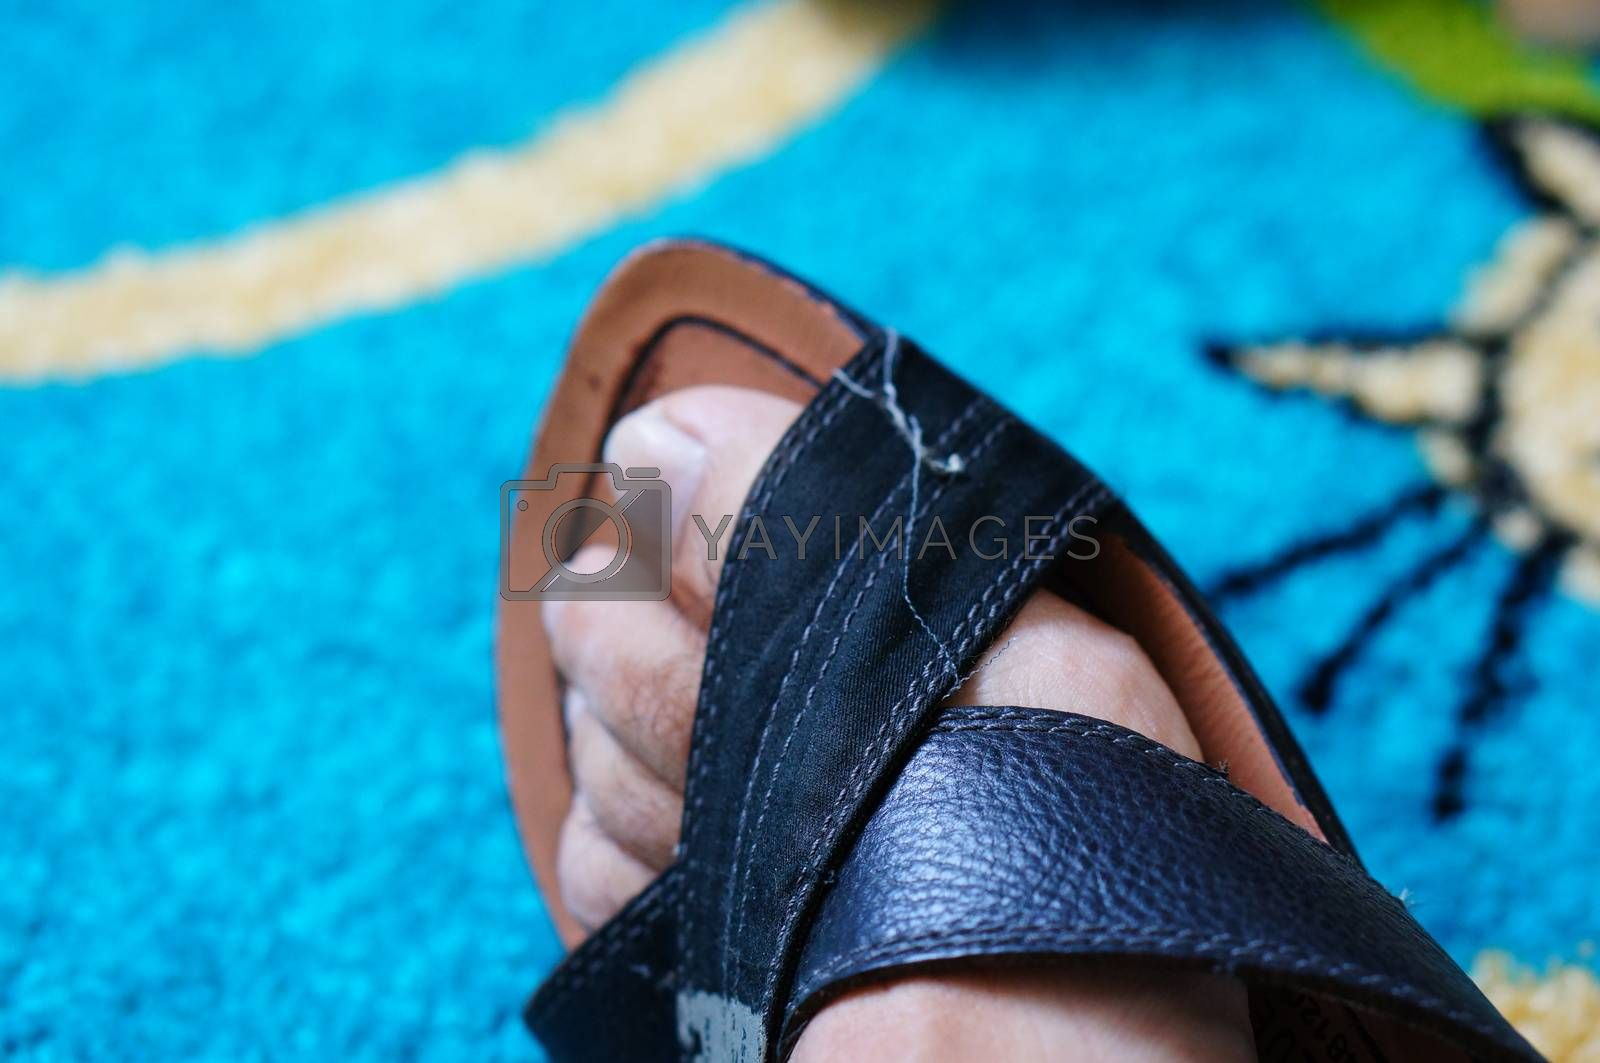 Foot in leather sandal on blue carpet